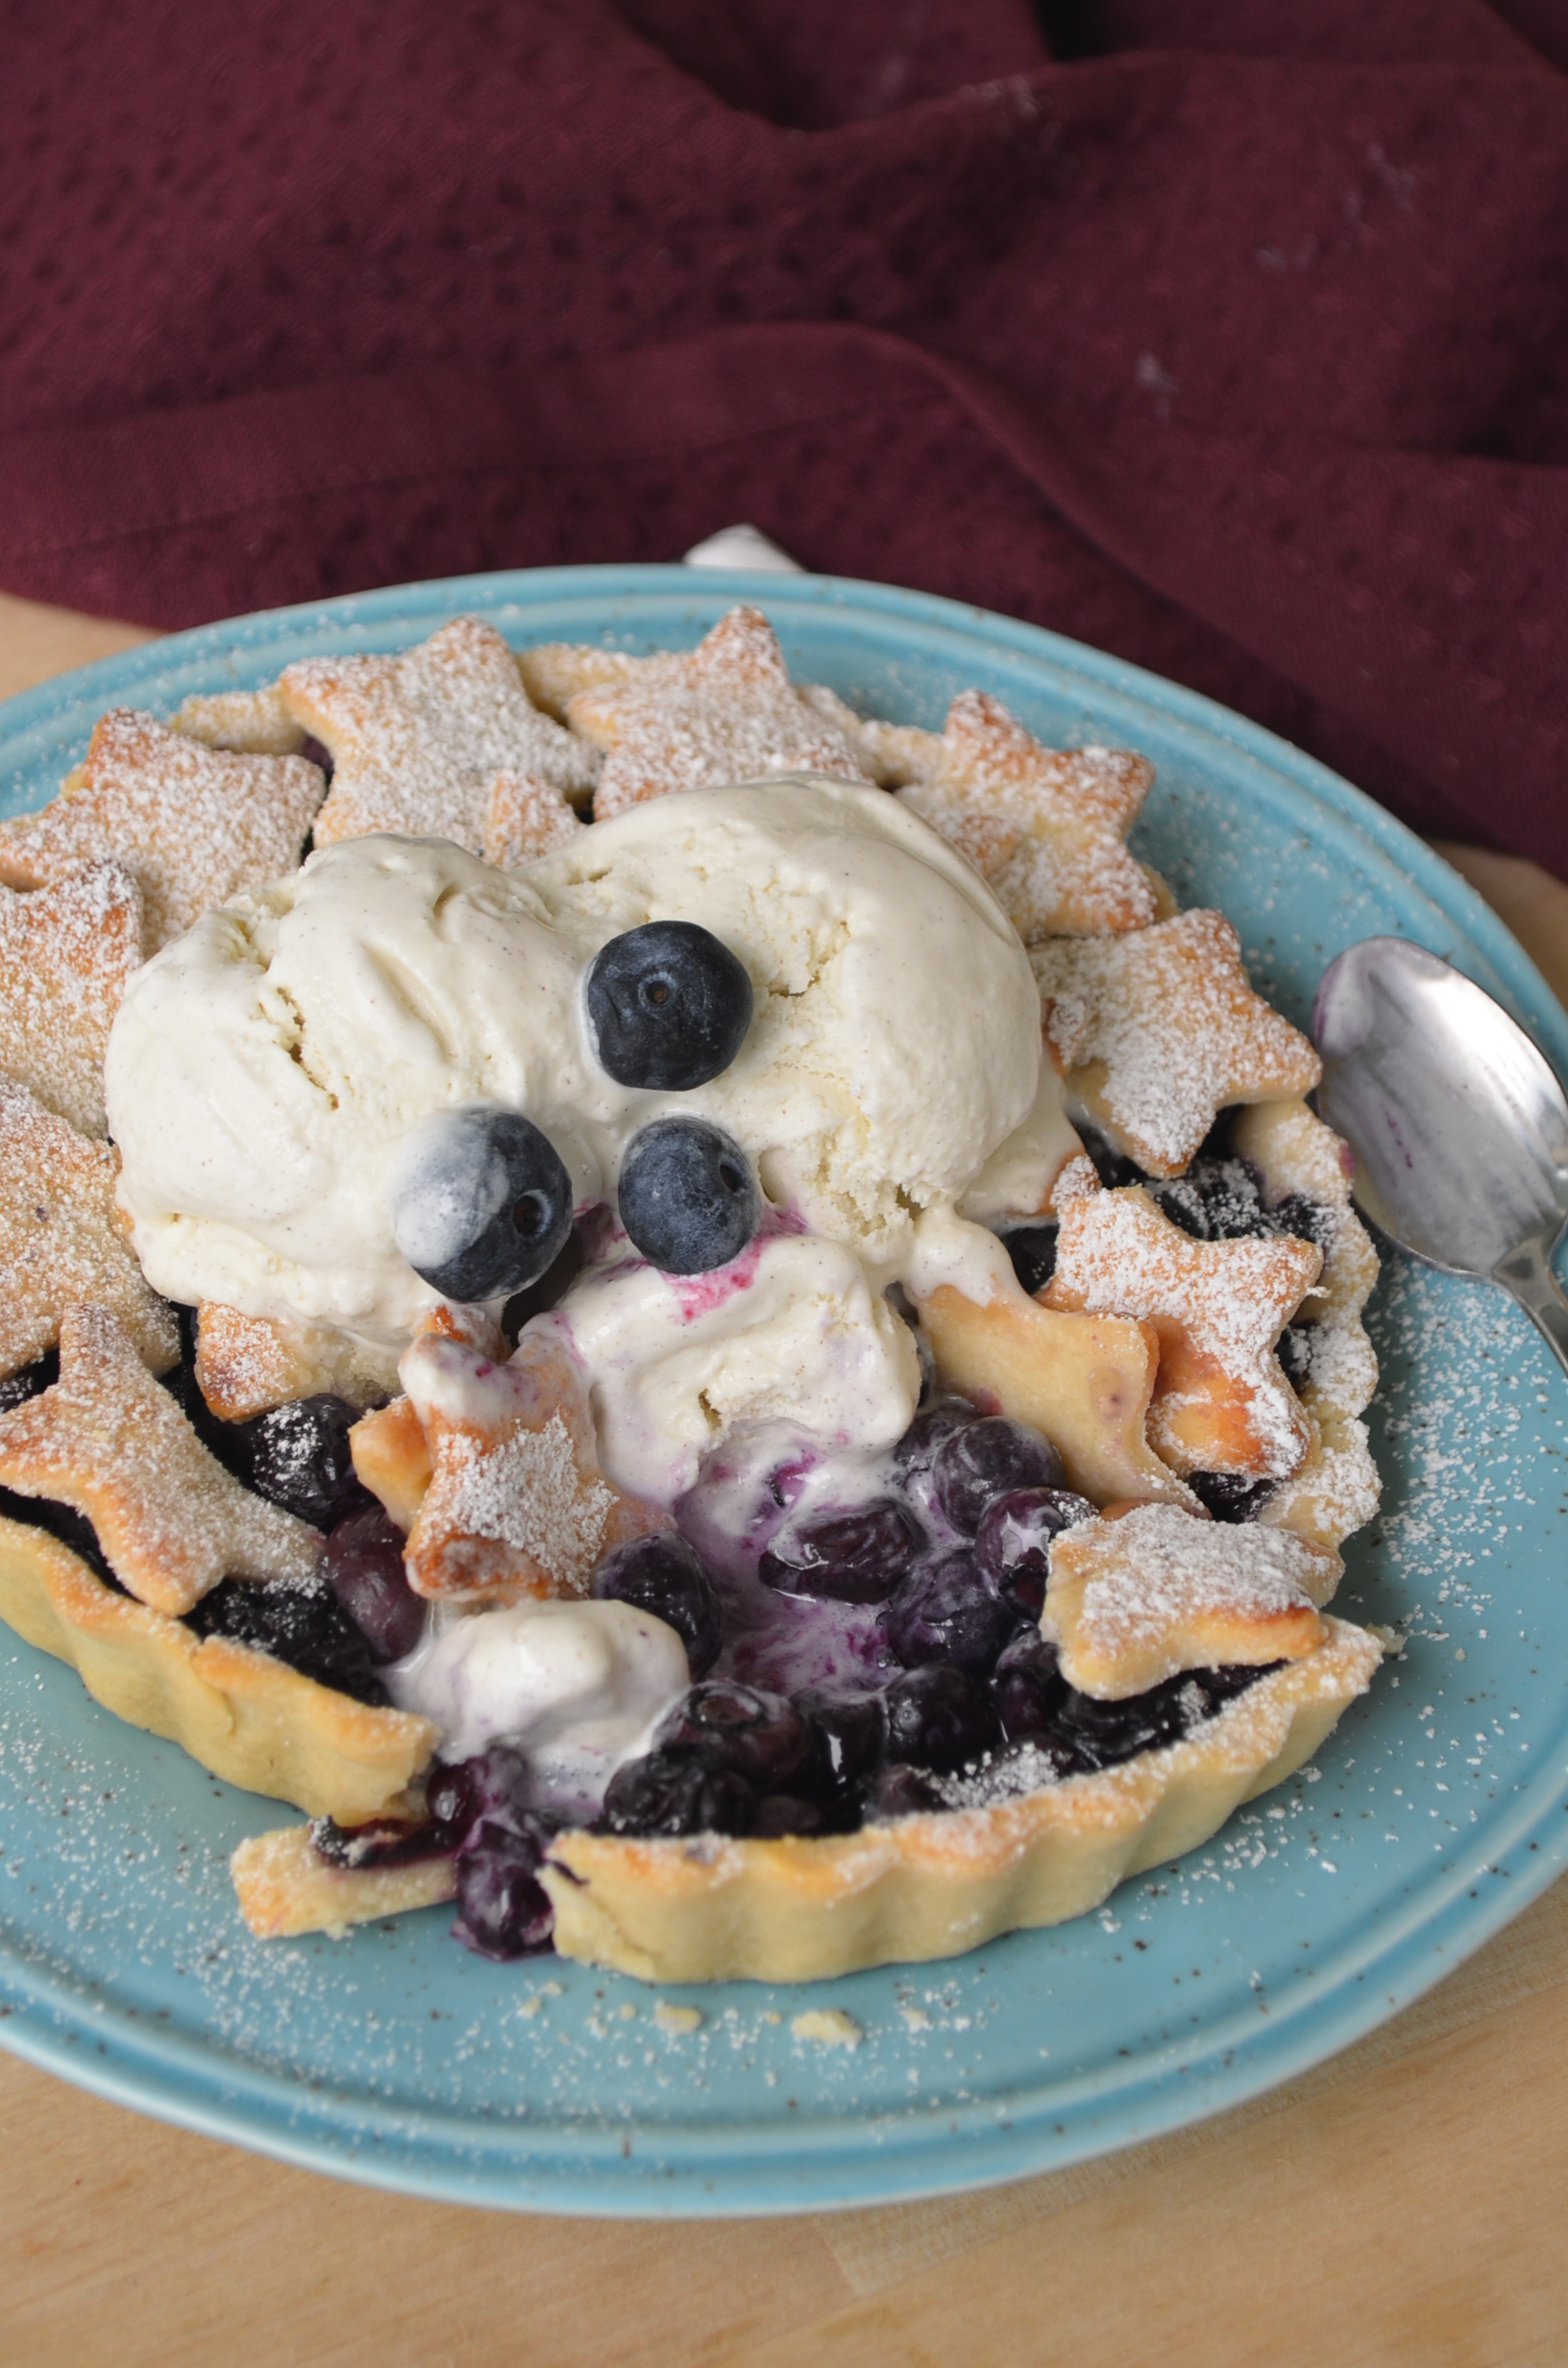 Blueberry Pie For Two